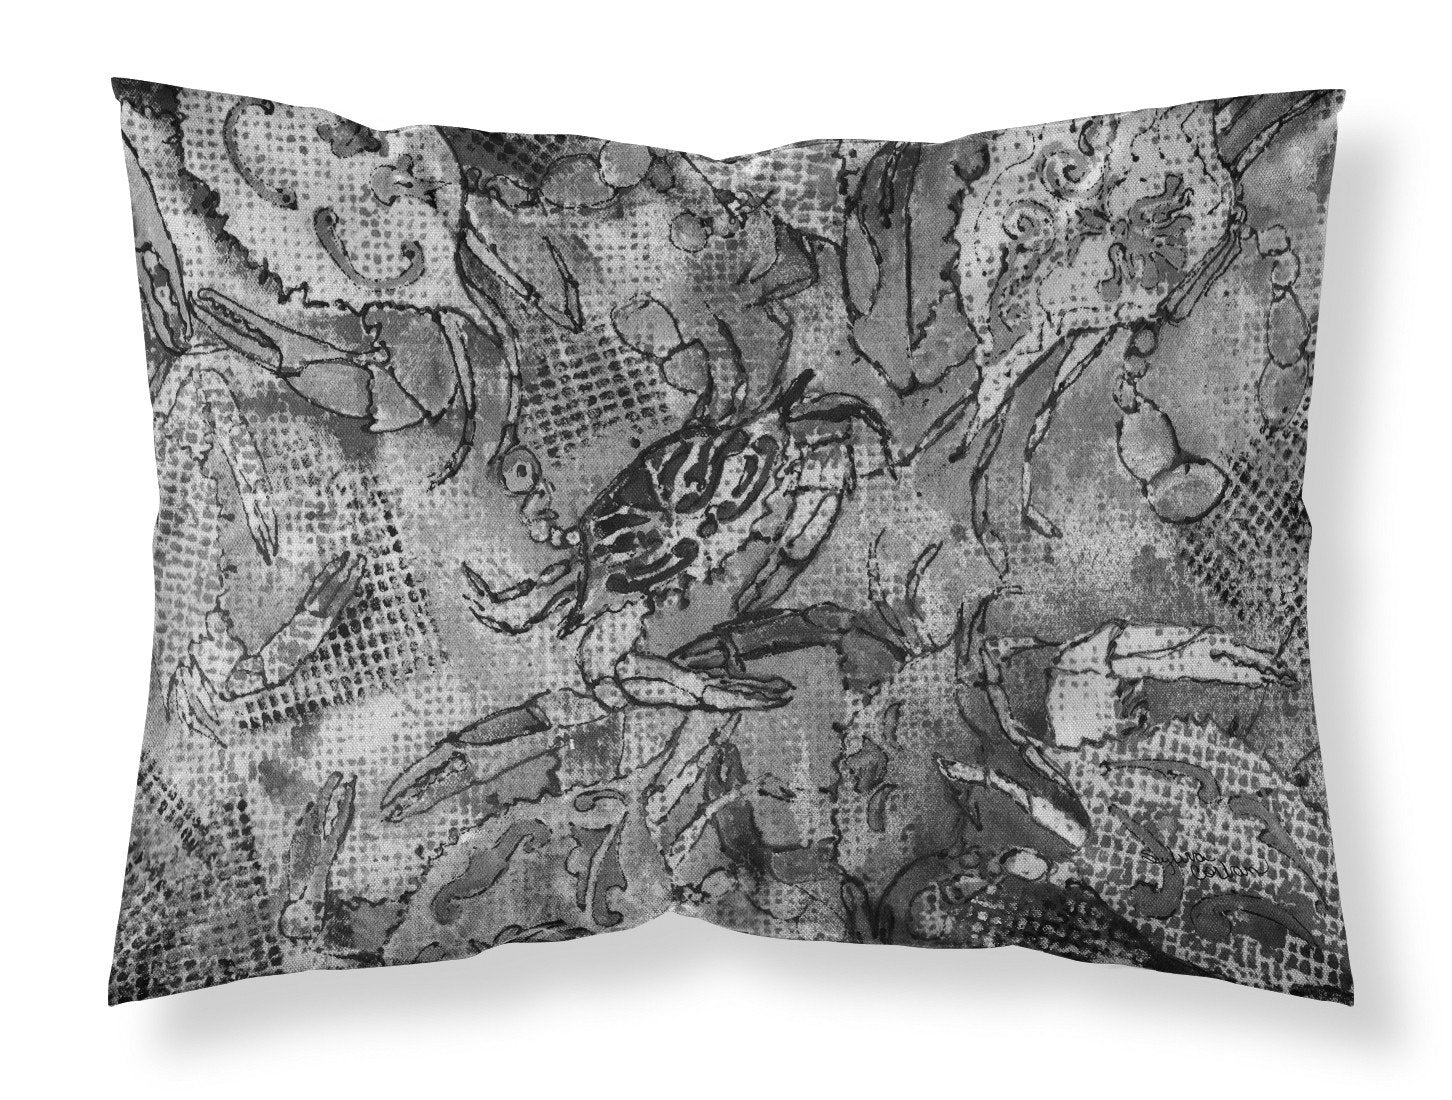 Buy this Grey Canvas Abstract Crabs Fabric Standard Pillowcase 8953PILLOWCASE